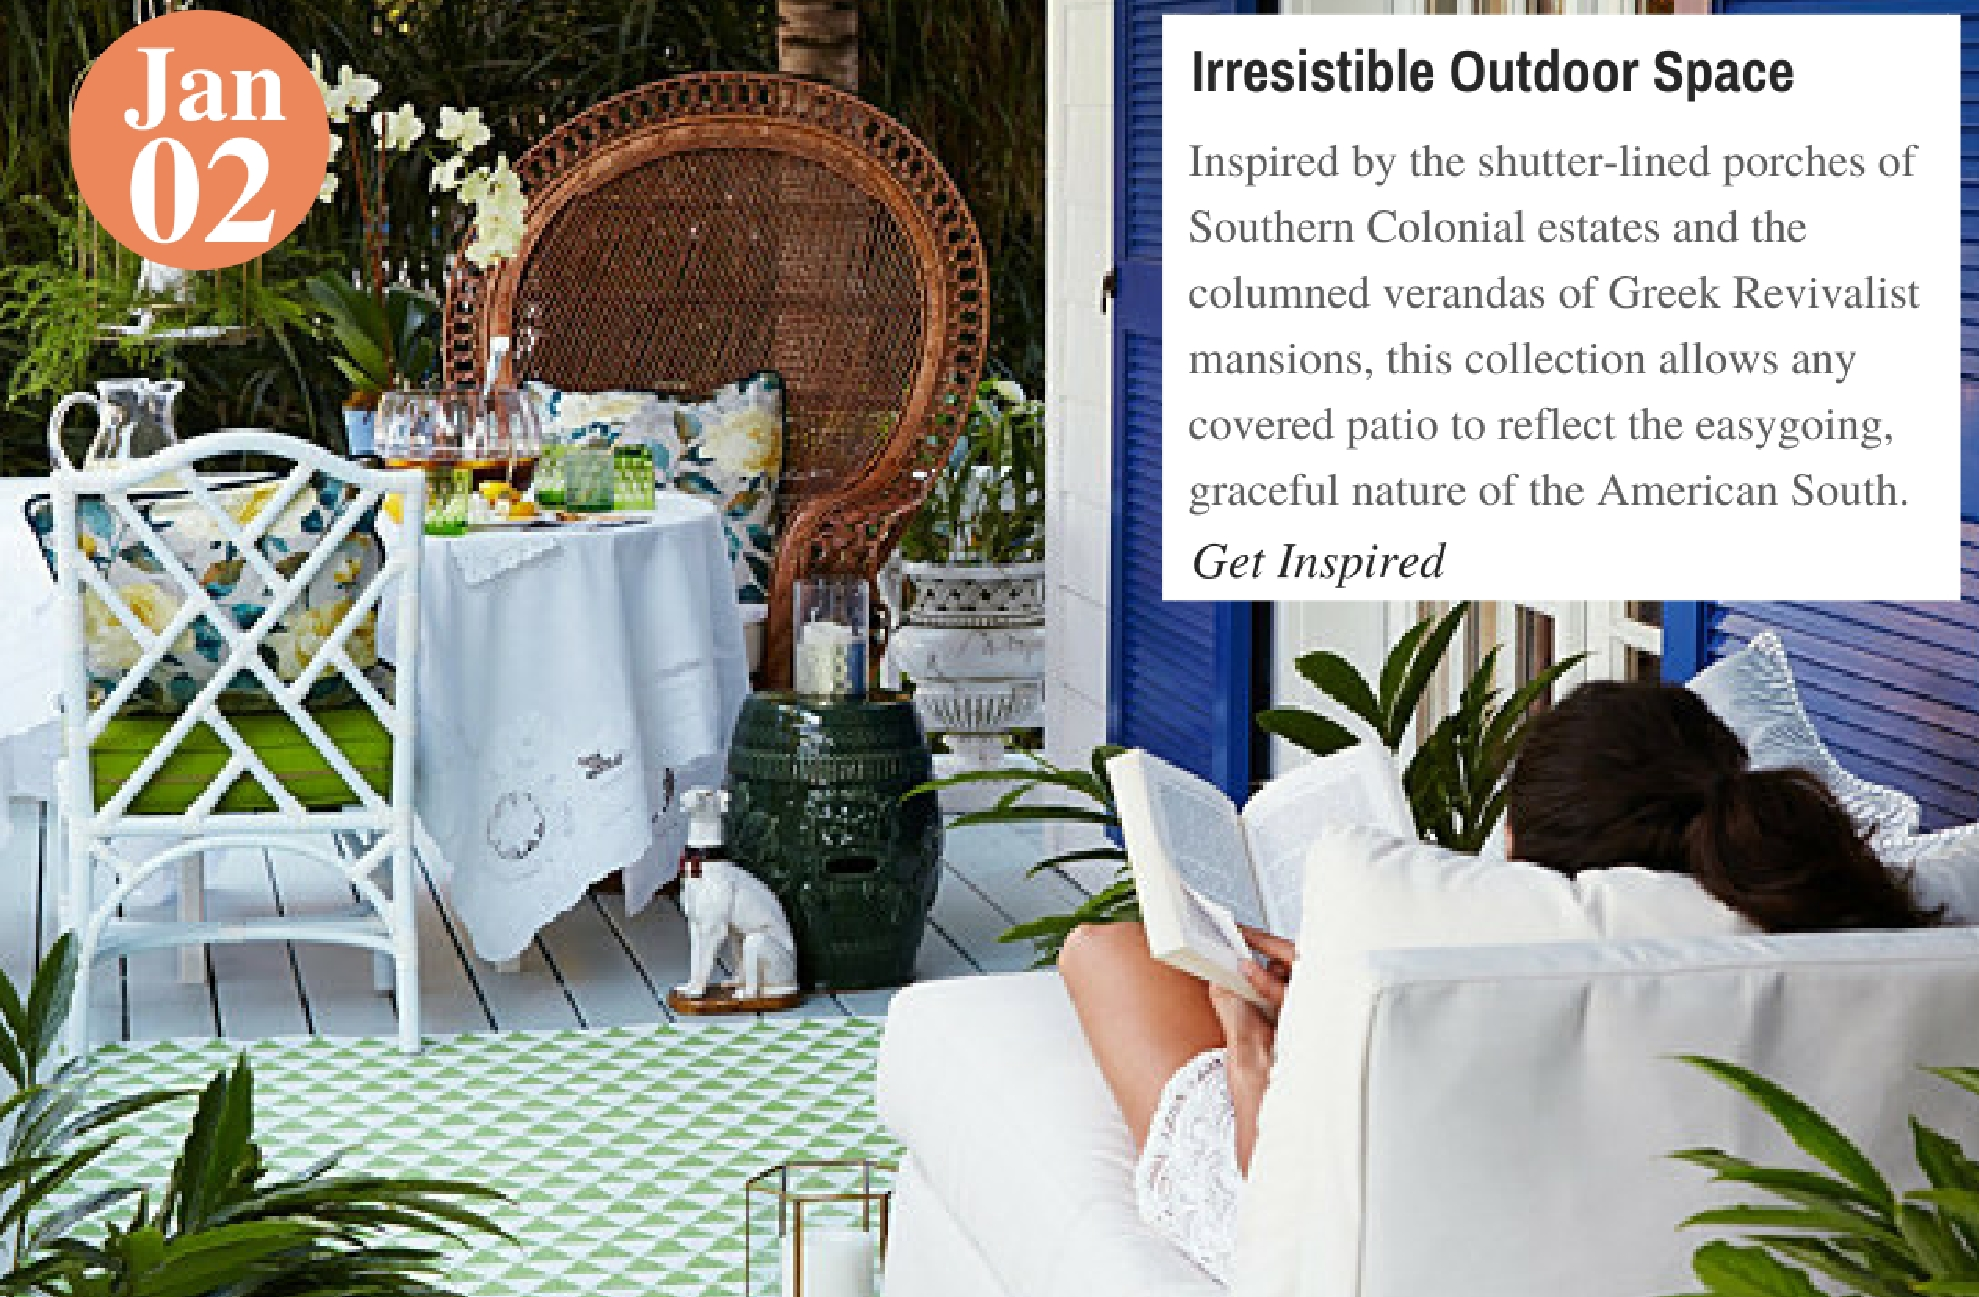 Irresistible Outdoor Space